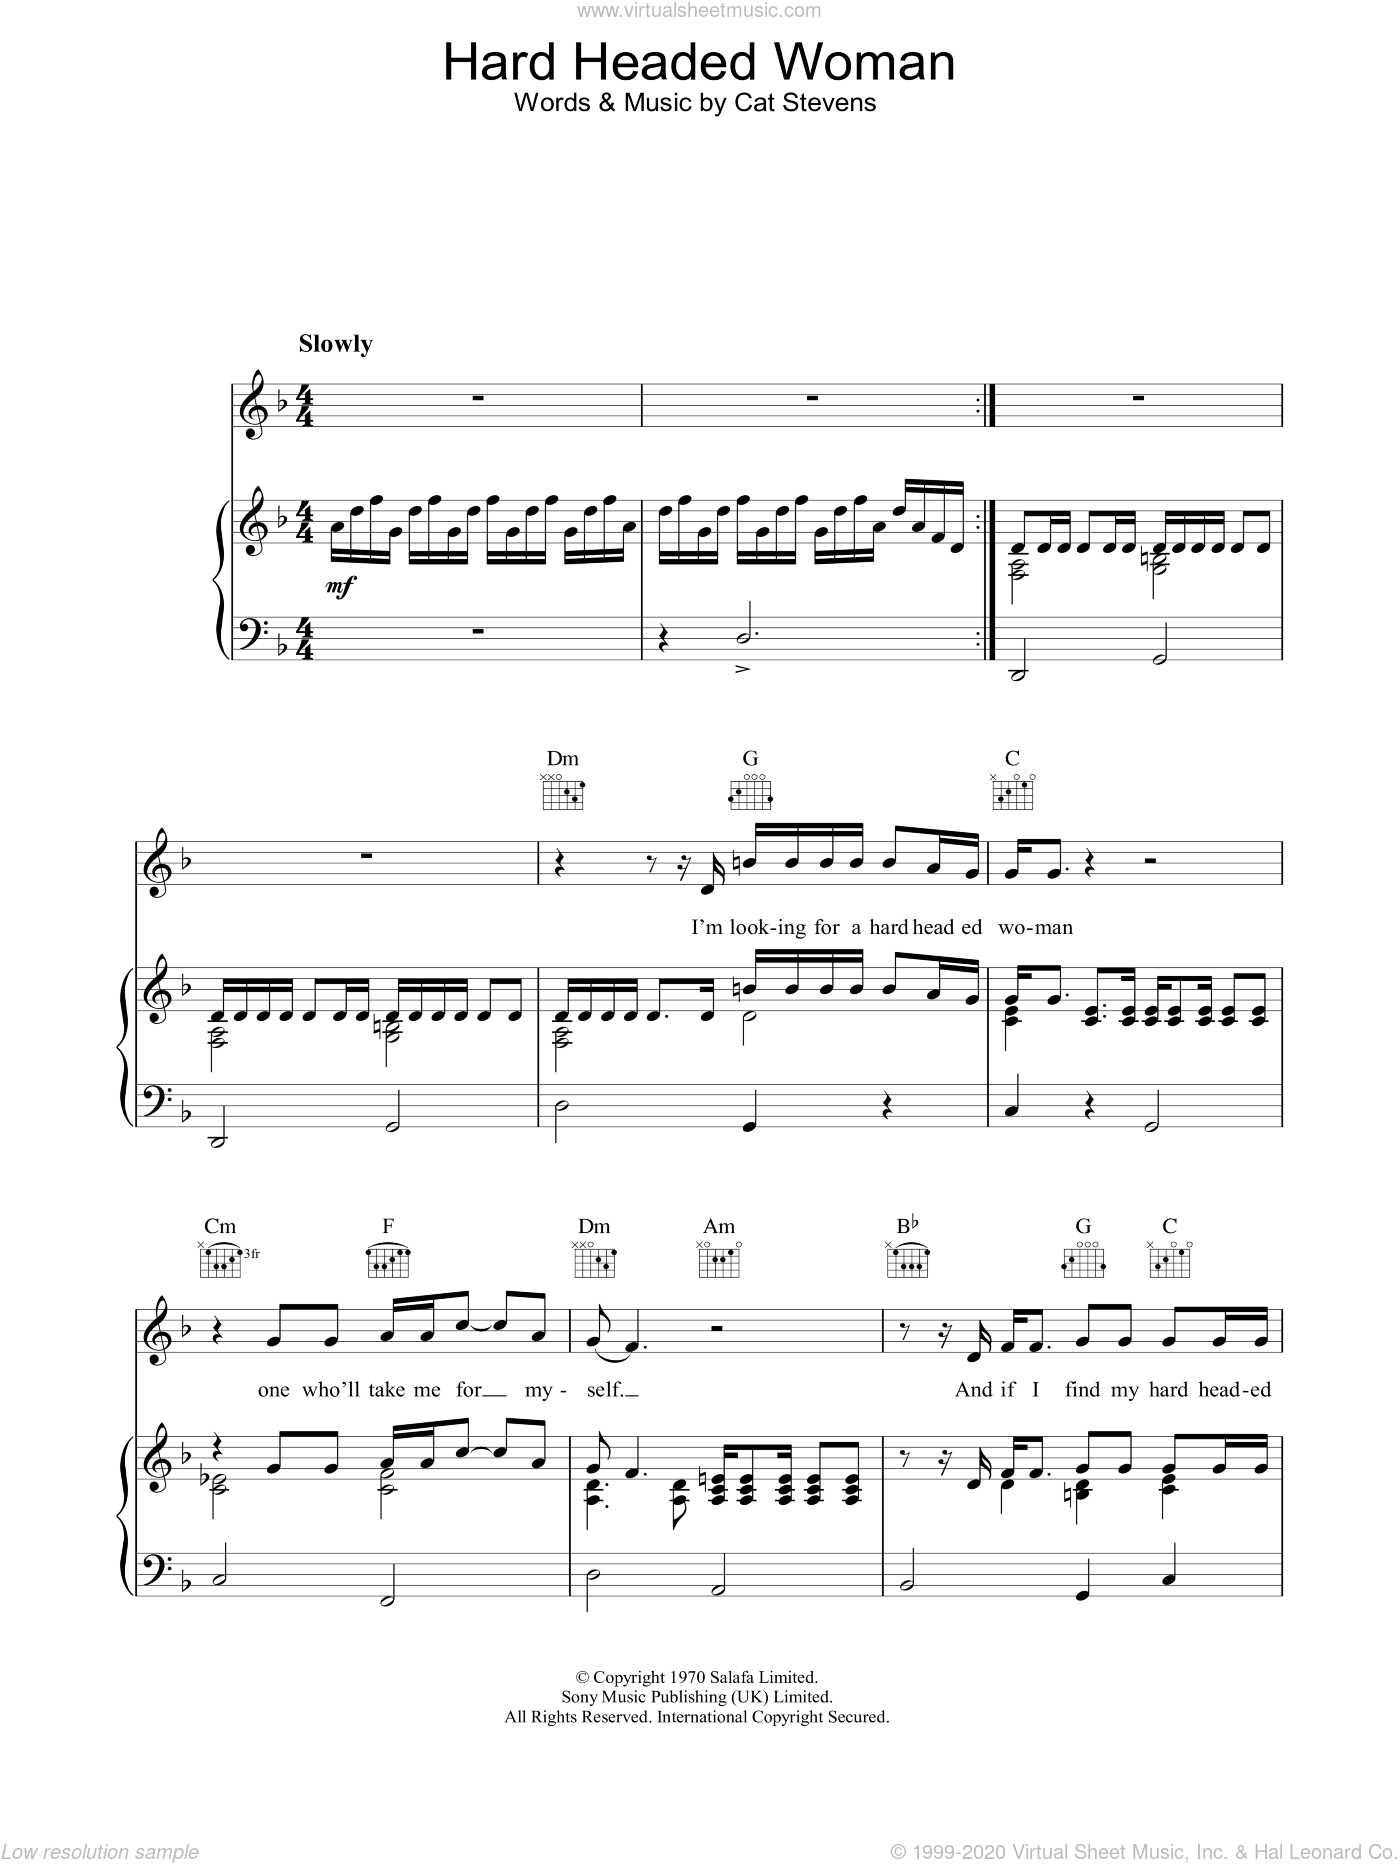 Hard Headed Woman sheet music for voice, piano or guitar by Cat Stevens. Score Image Preview.